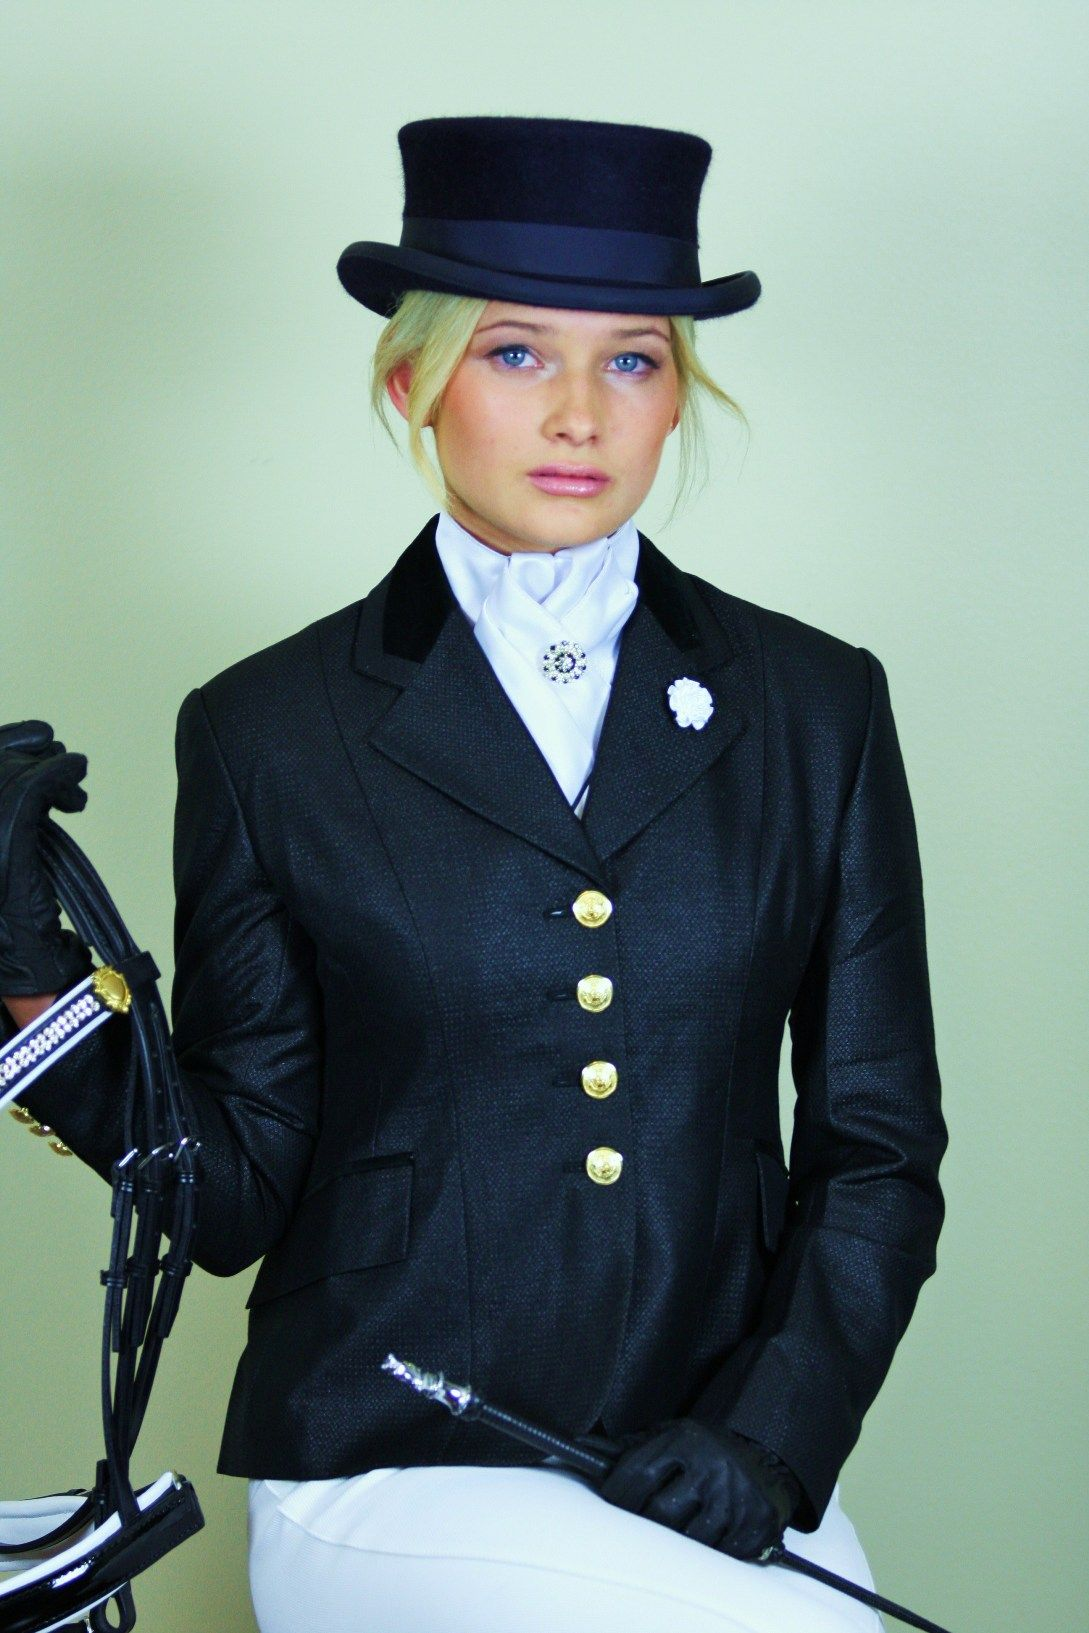 Sparkle dressage jacket Riding outfit, Equestrian